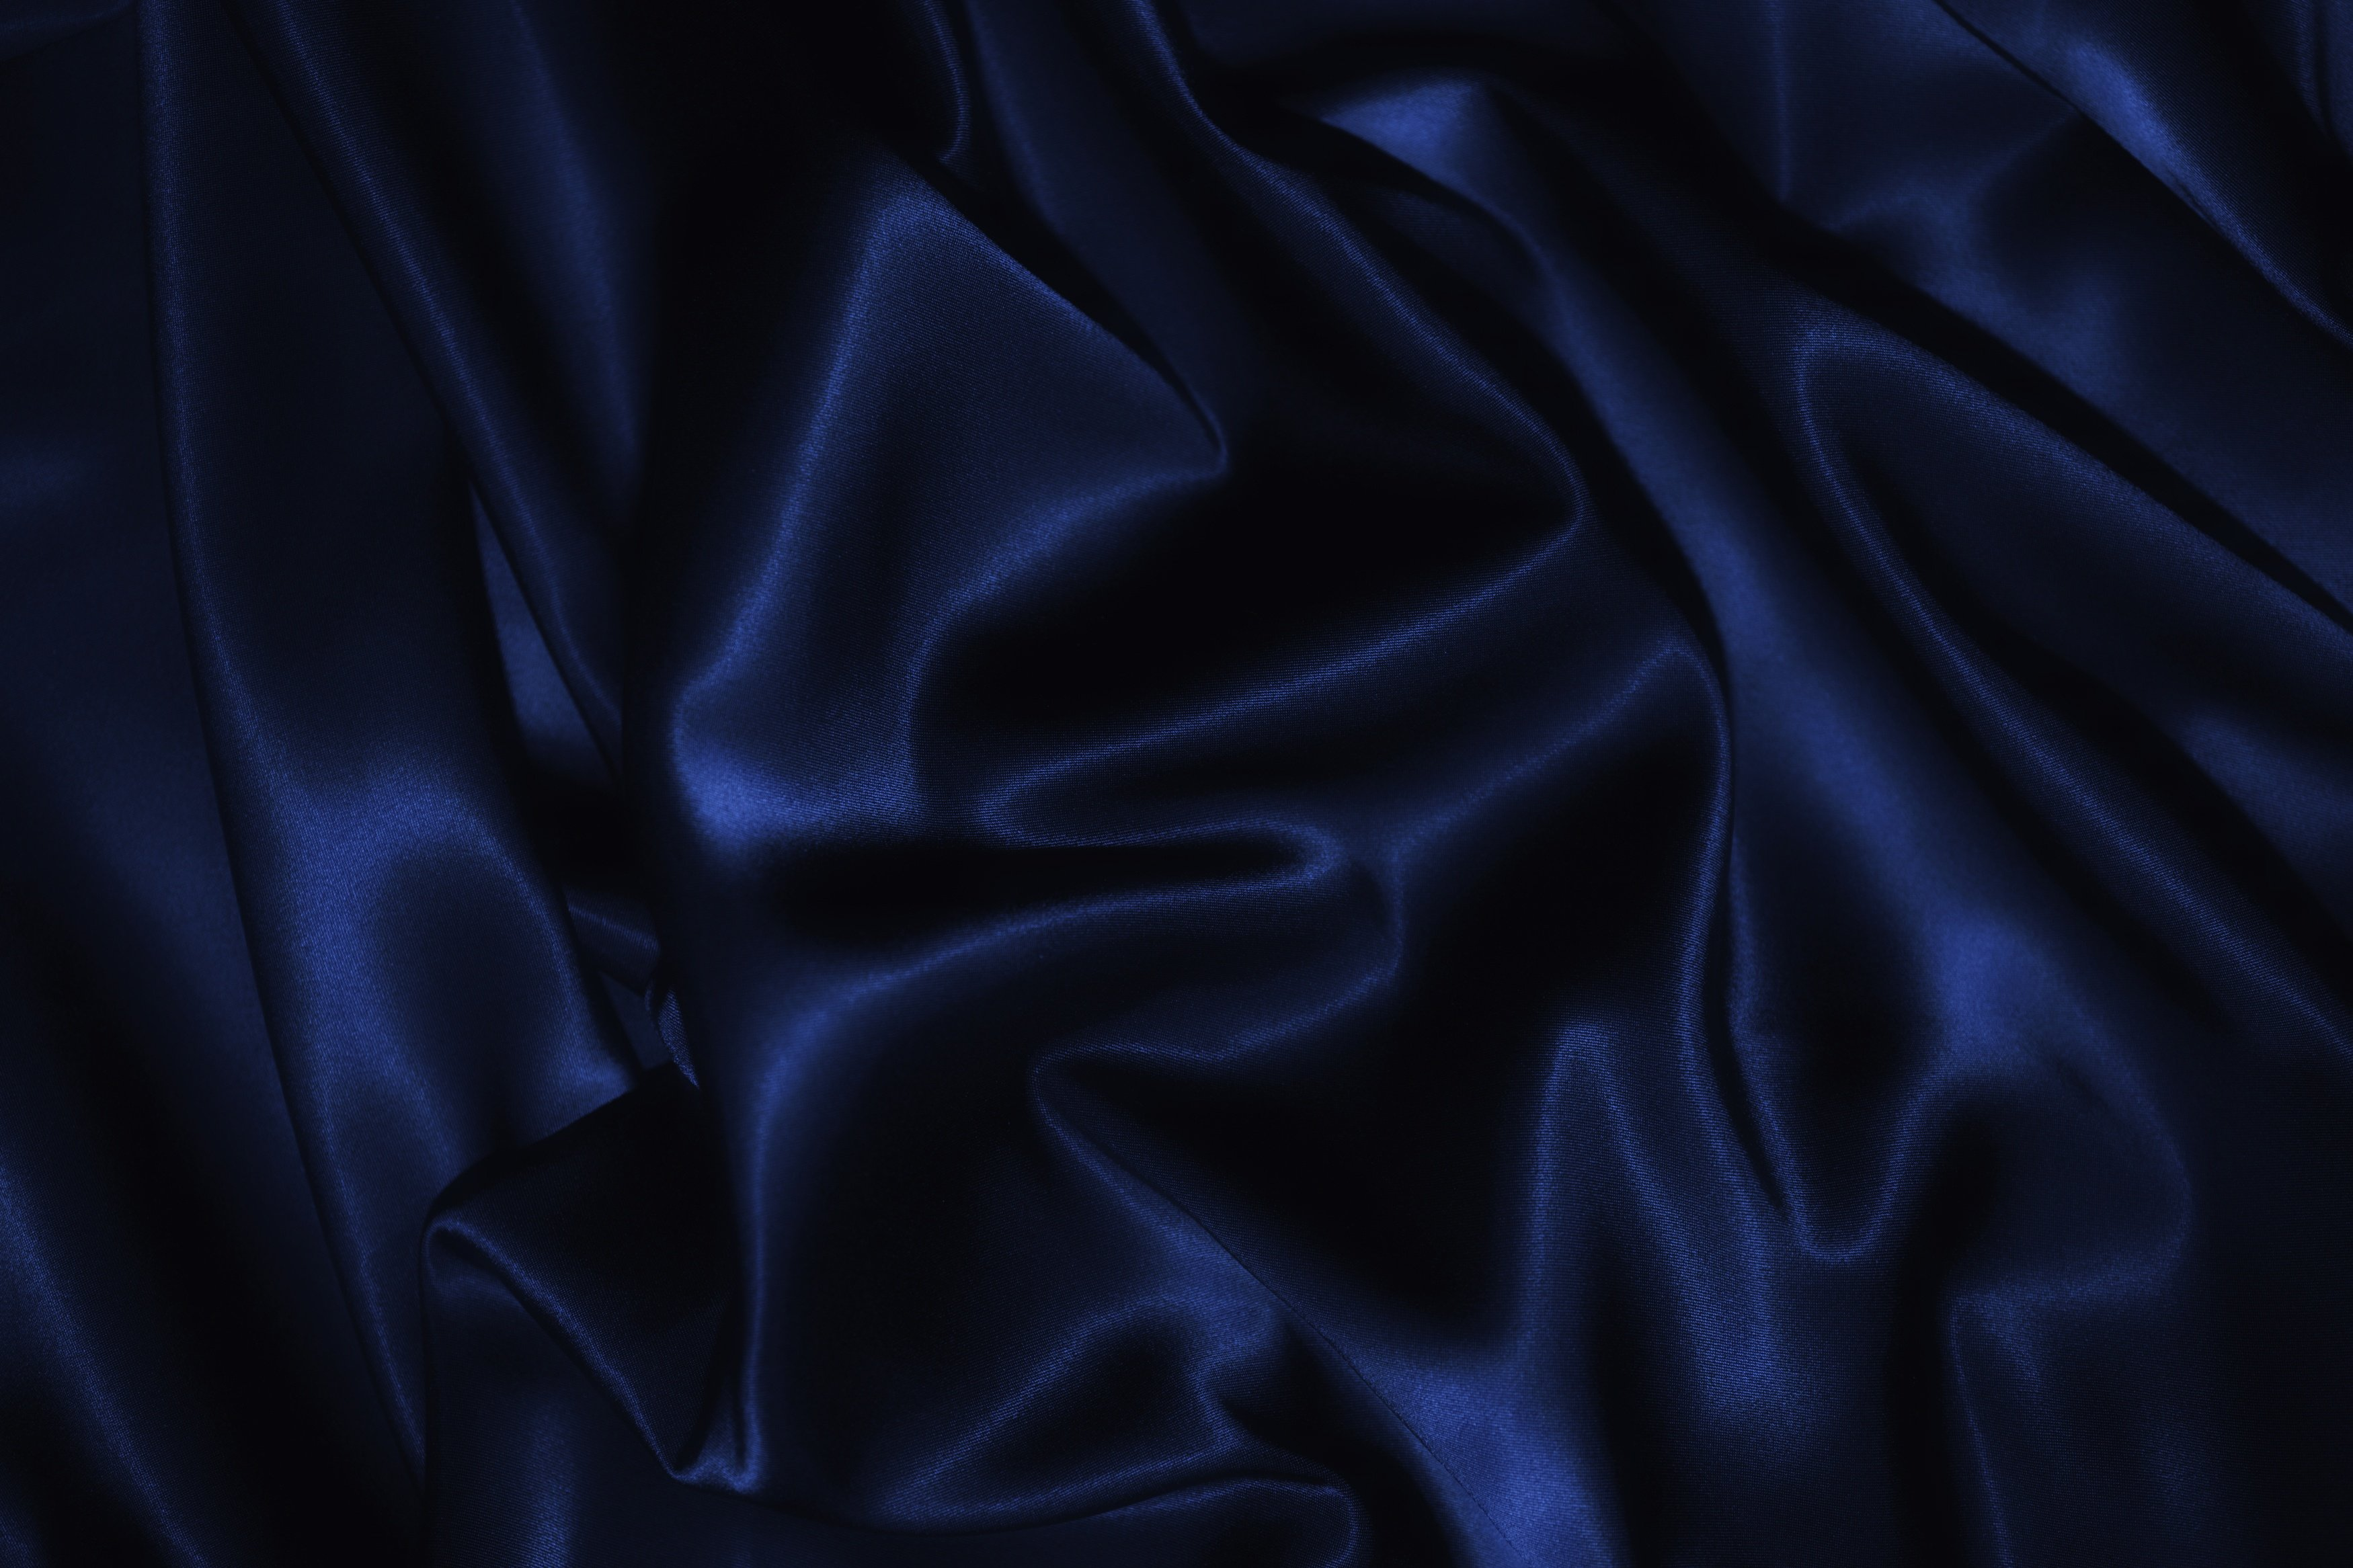 bigstock-Texture-Of-A-Dark-Blue-Silk-8630149.jpg